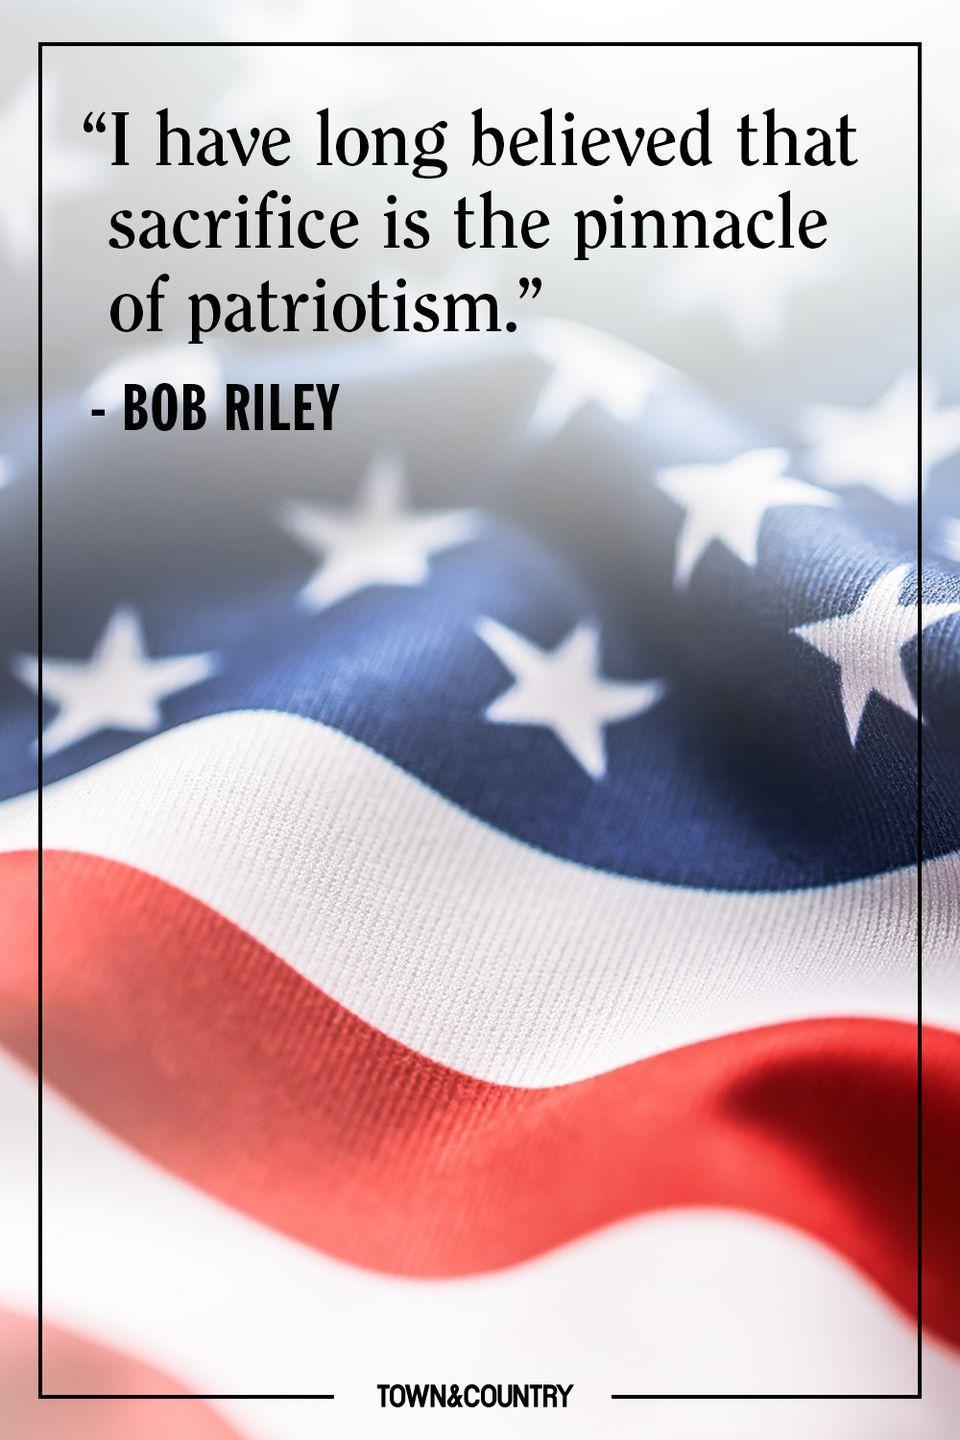 "<p>""I have long believed that sacrifice is the pinnacle of patriotism.""</p><p>– Bob Riley</p>"